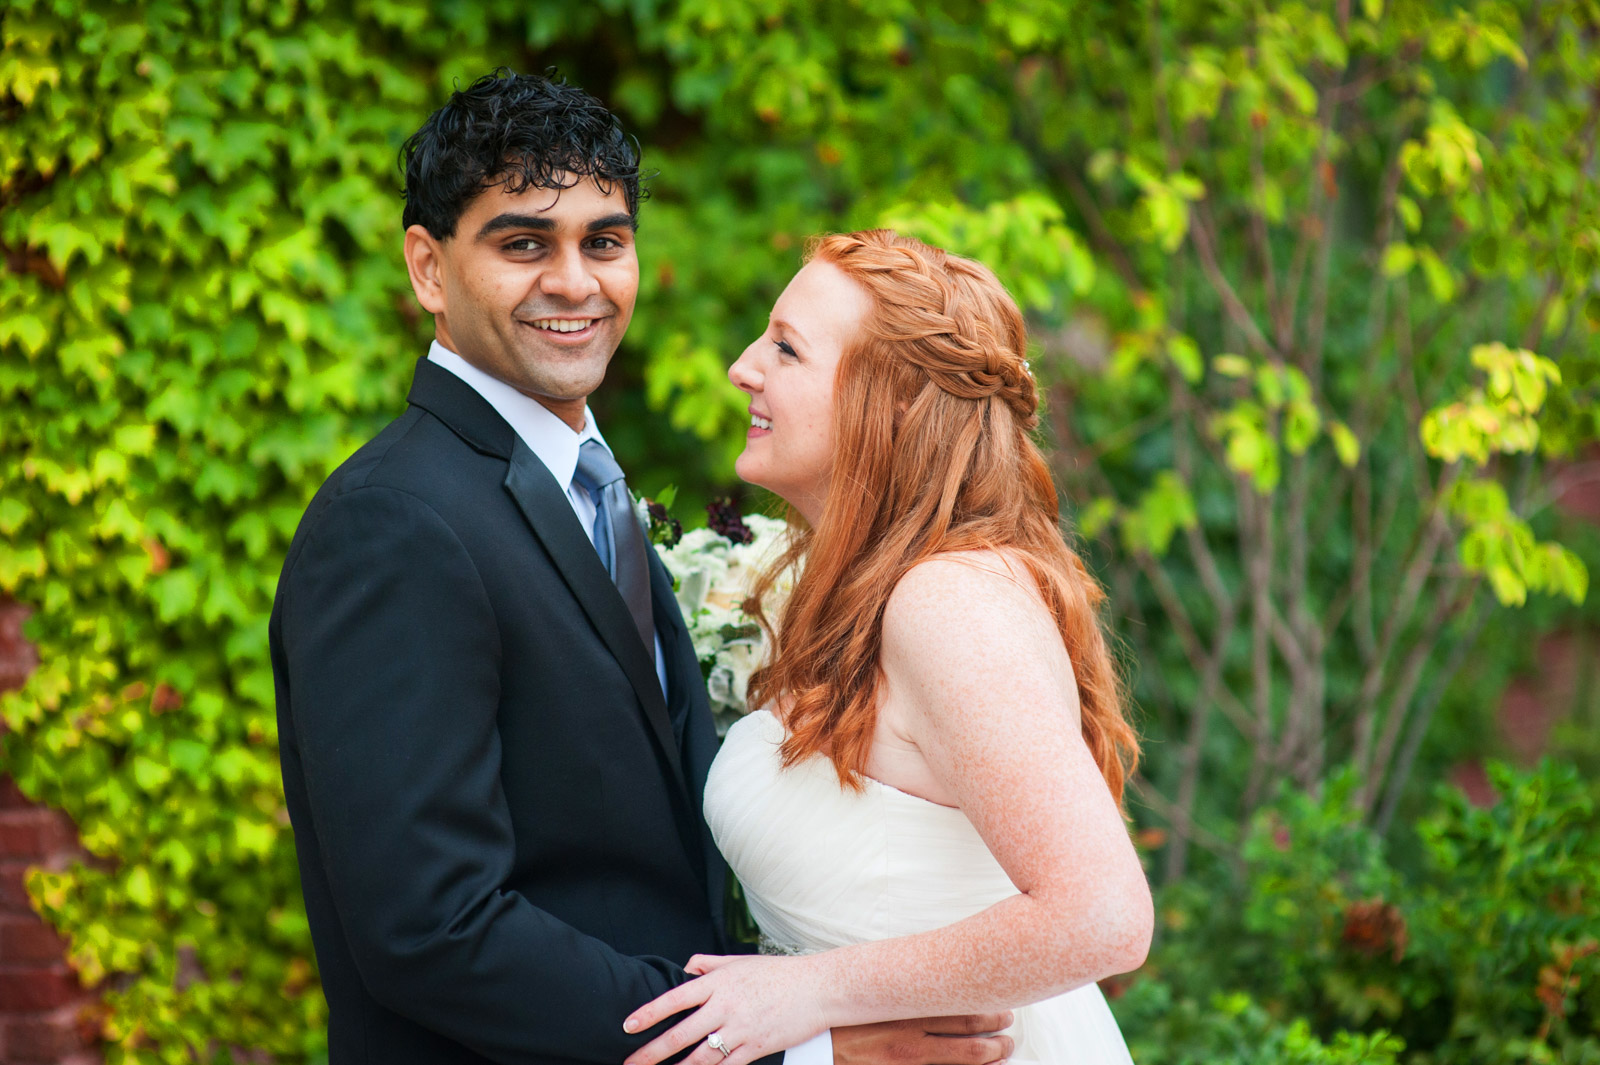 Irish redhead bride with Indian groom